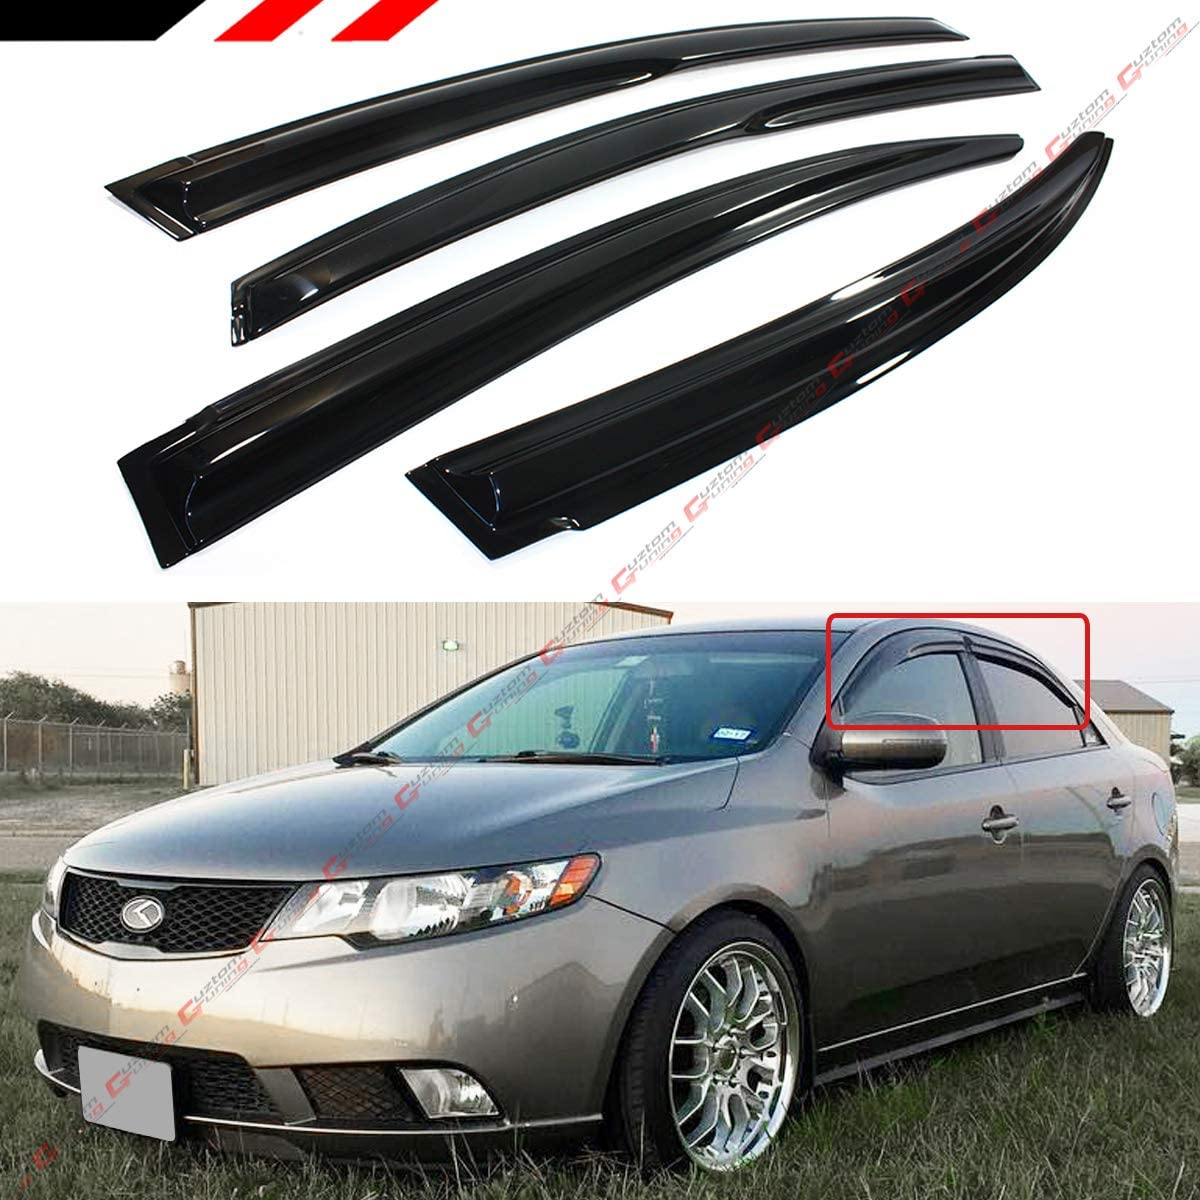 Cuztom Tuning Seattle Mall 3D Wavy Style Max 42% OFF Smoked Visor Window Weather fo Guard